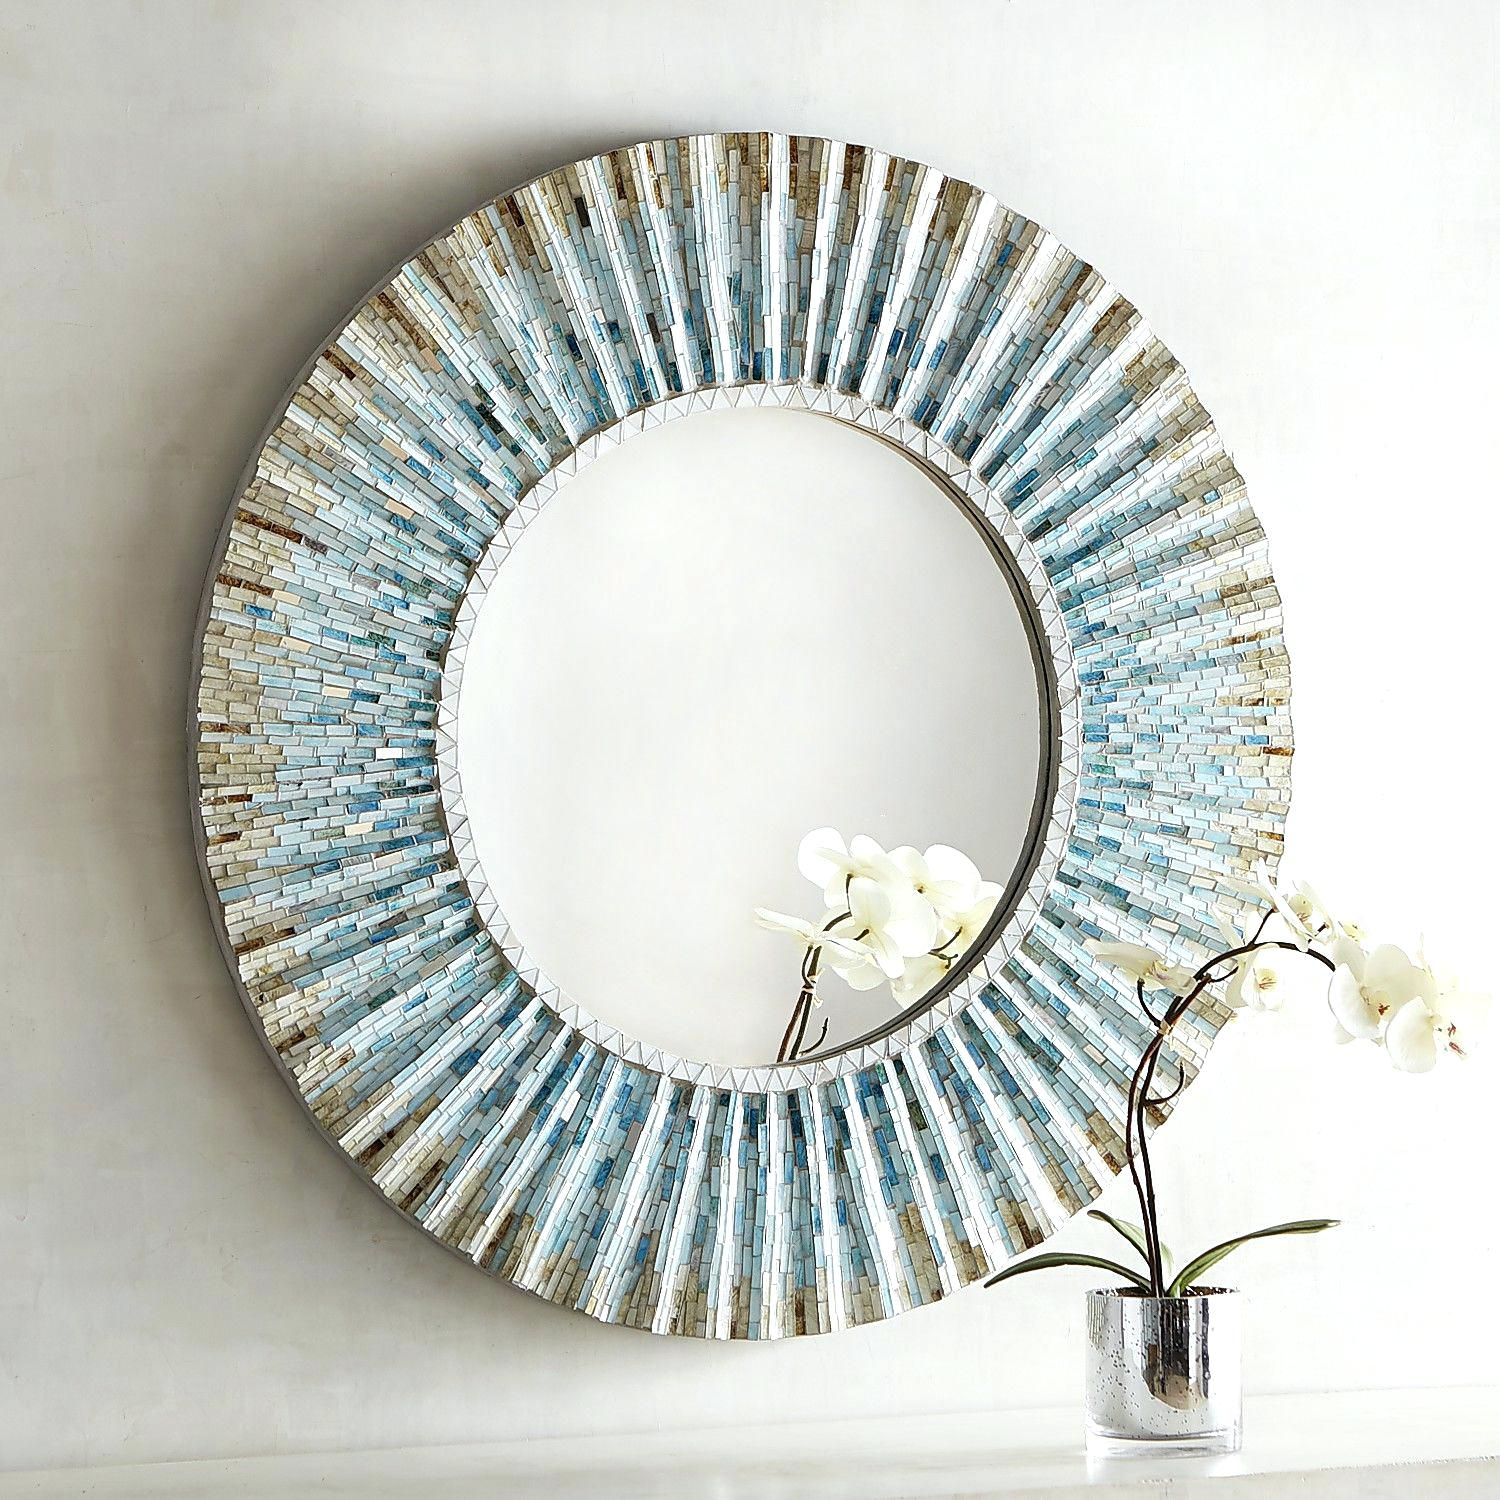 Round Mosaic Mirror Diy Mirrors Uk Shopwiz With Regard To Mosaic Mirrors For Sale (Image 13 of 15)